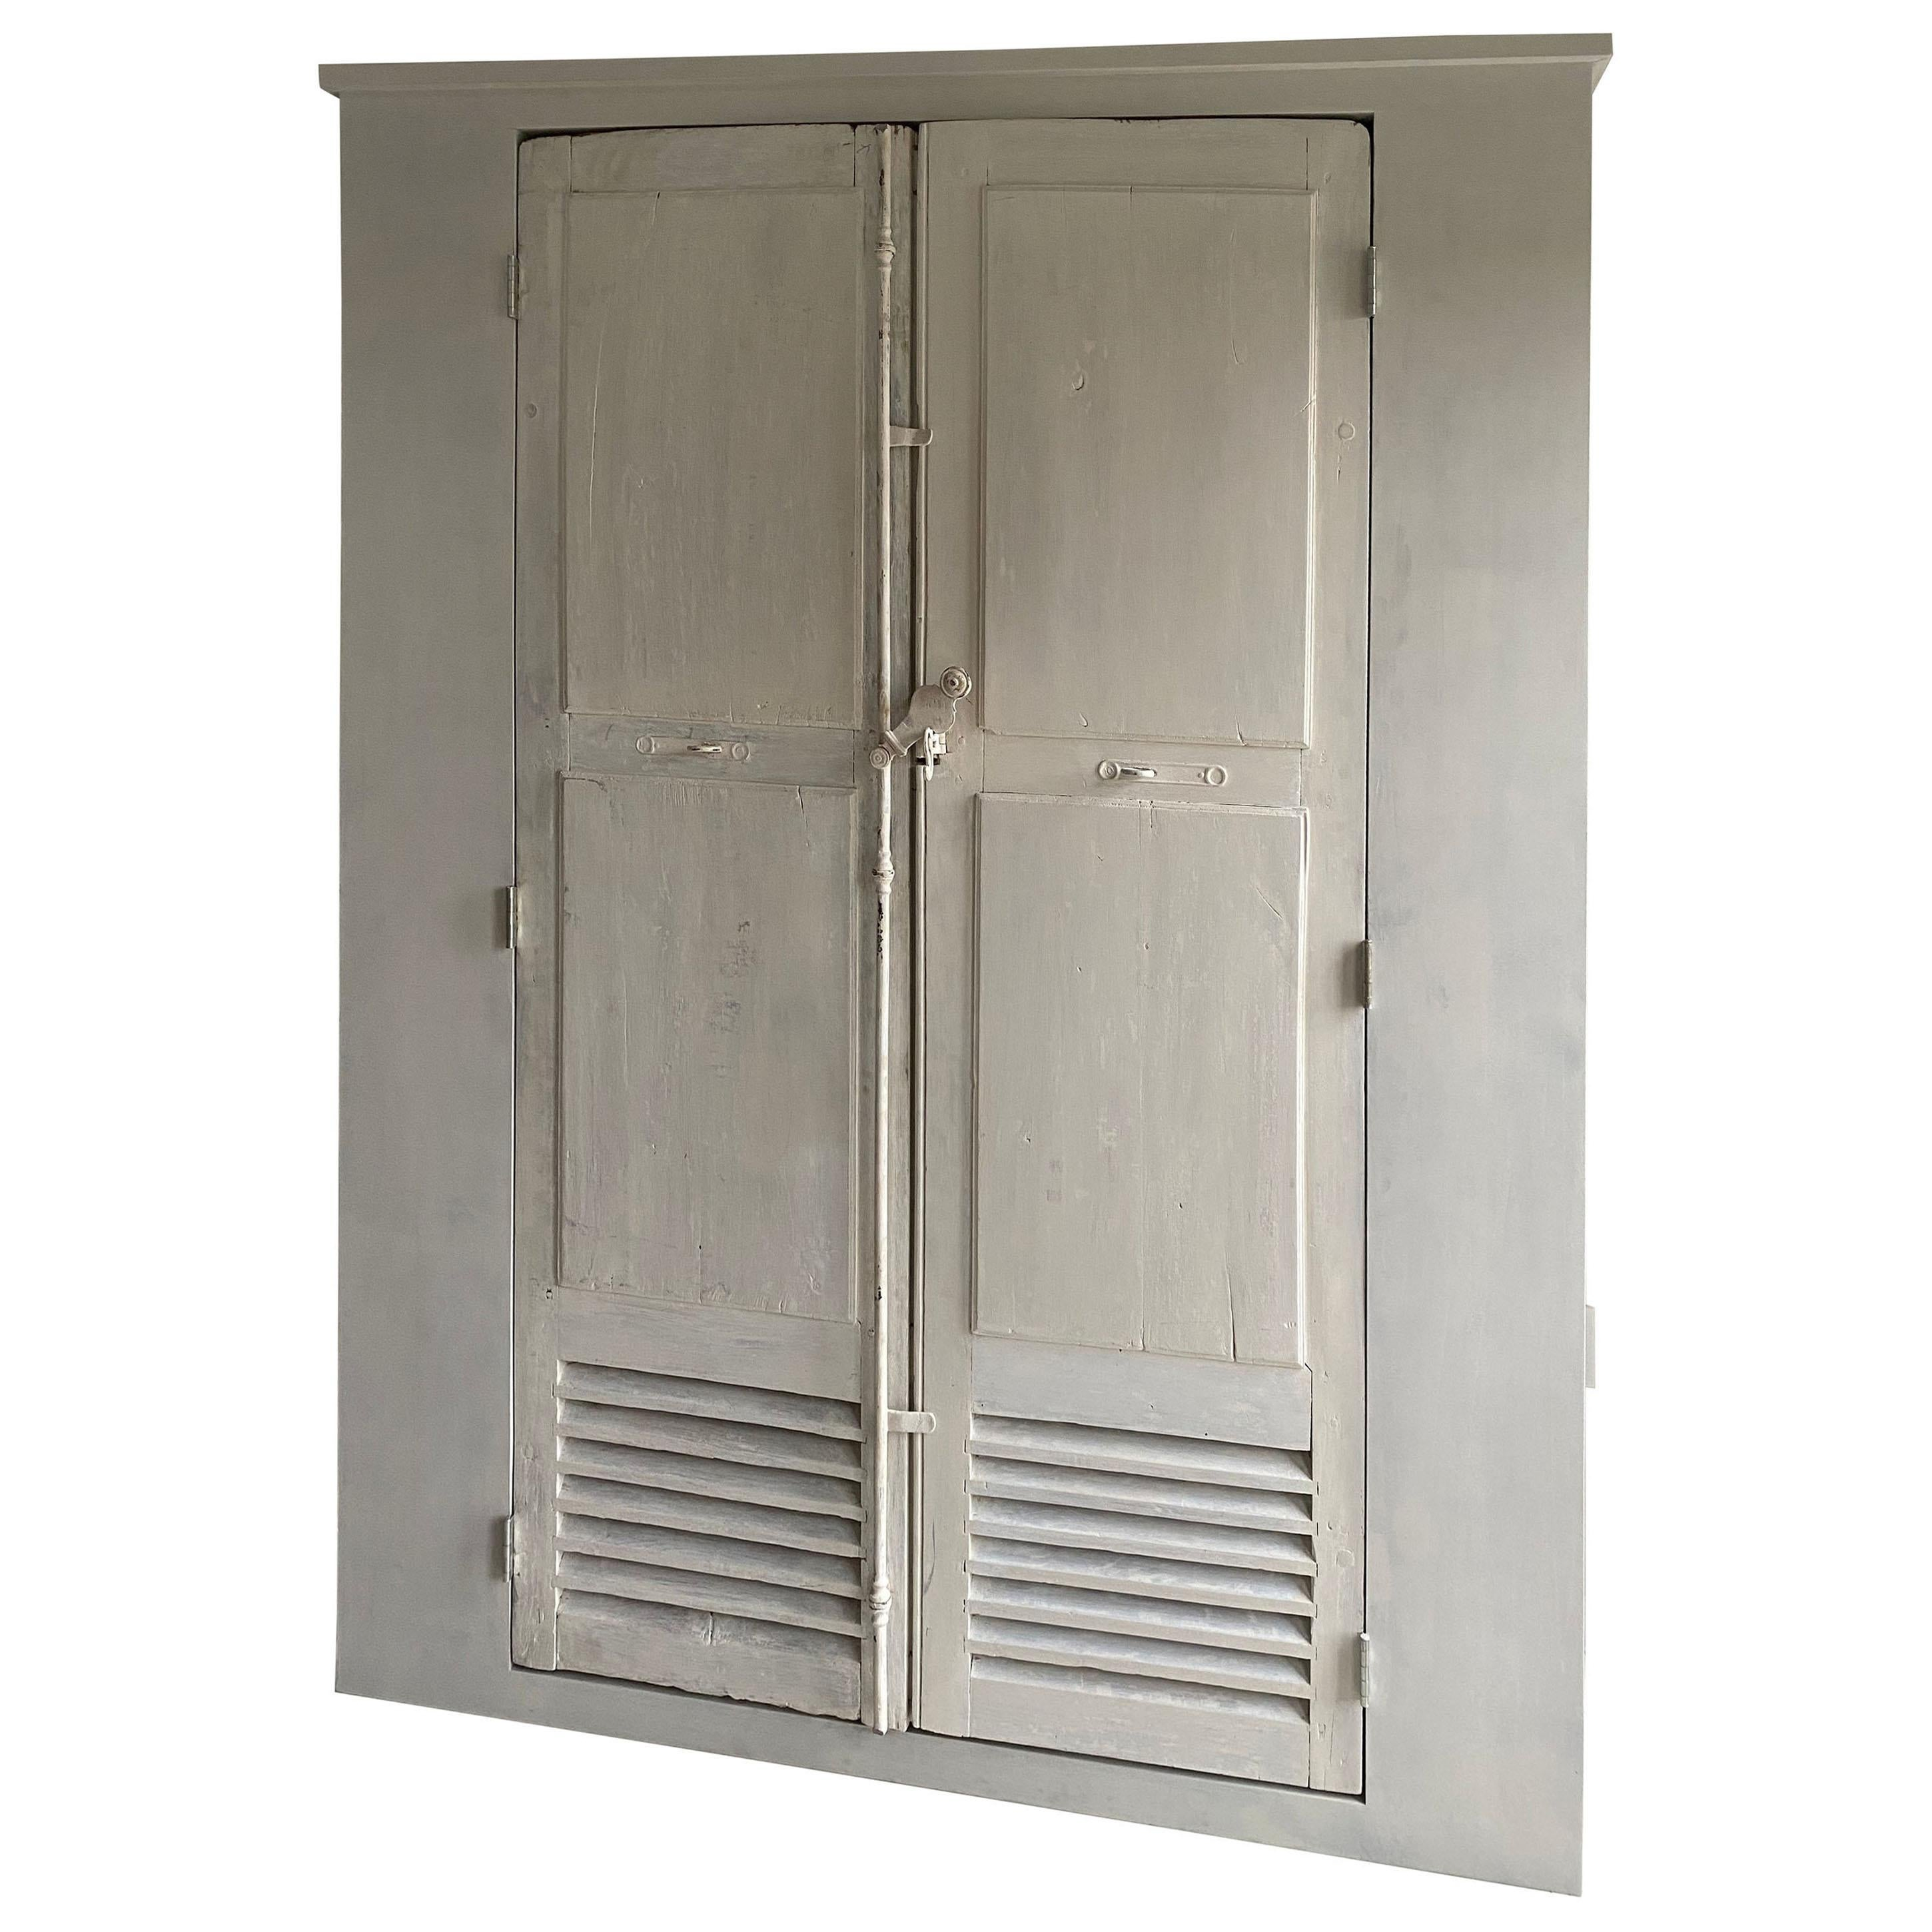 Large Cabinet/Cupboard with Antique Doors